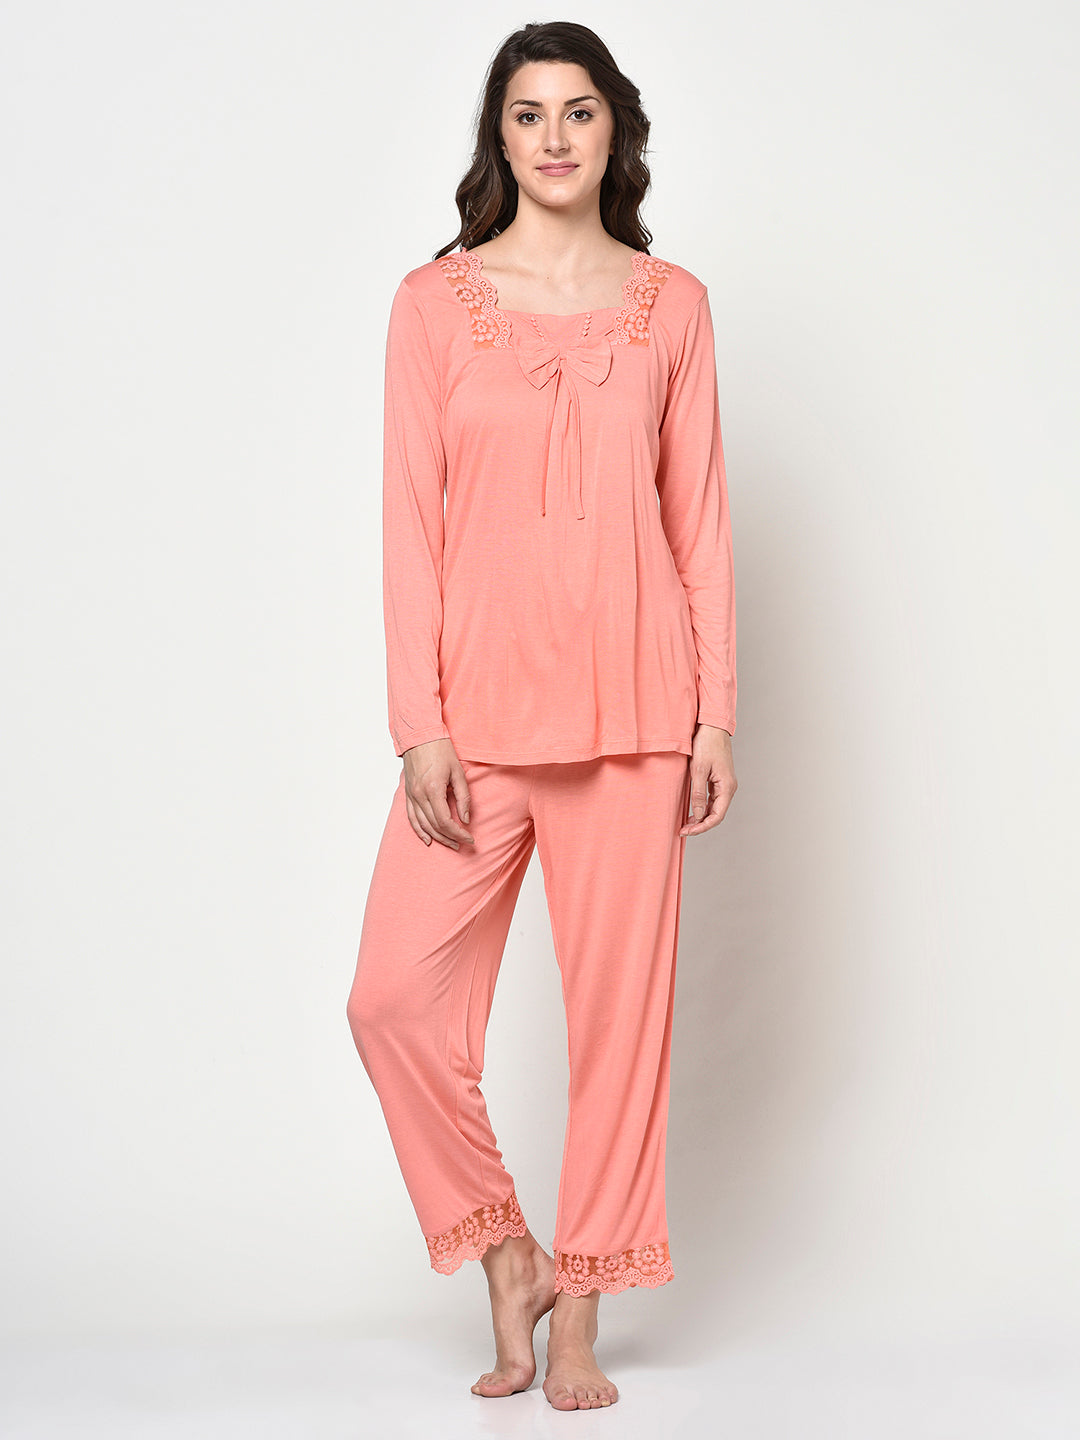 Peach Color Lace Collar Night Suit - Avsoy